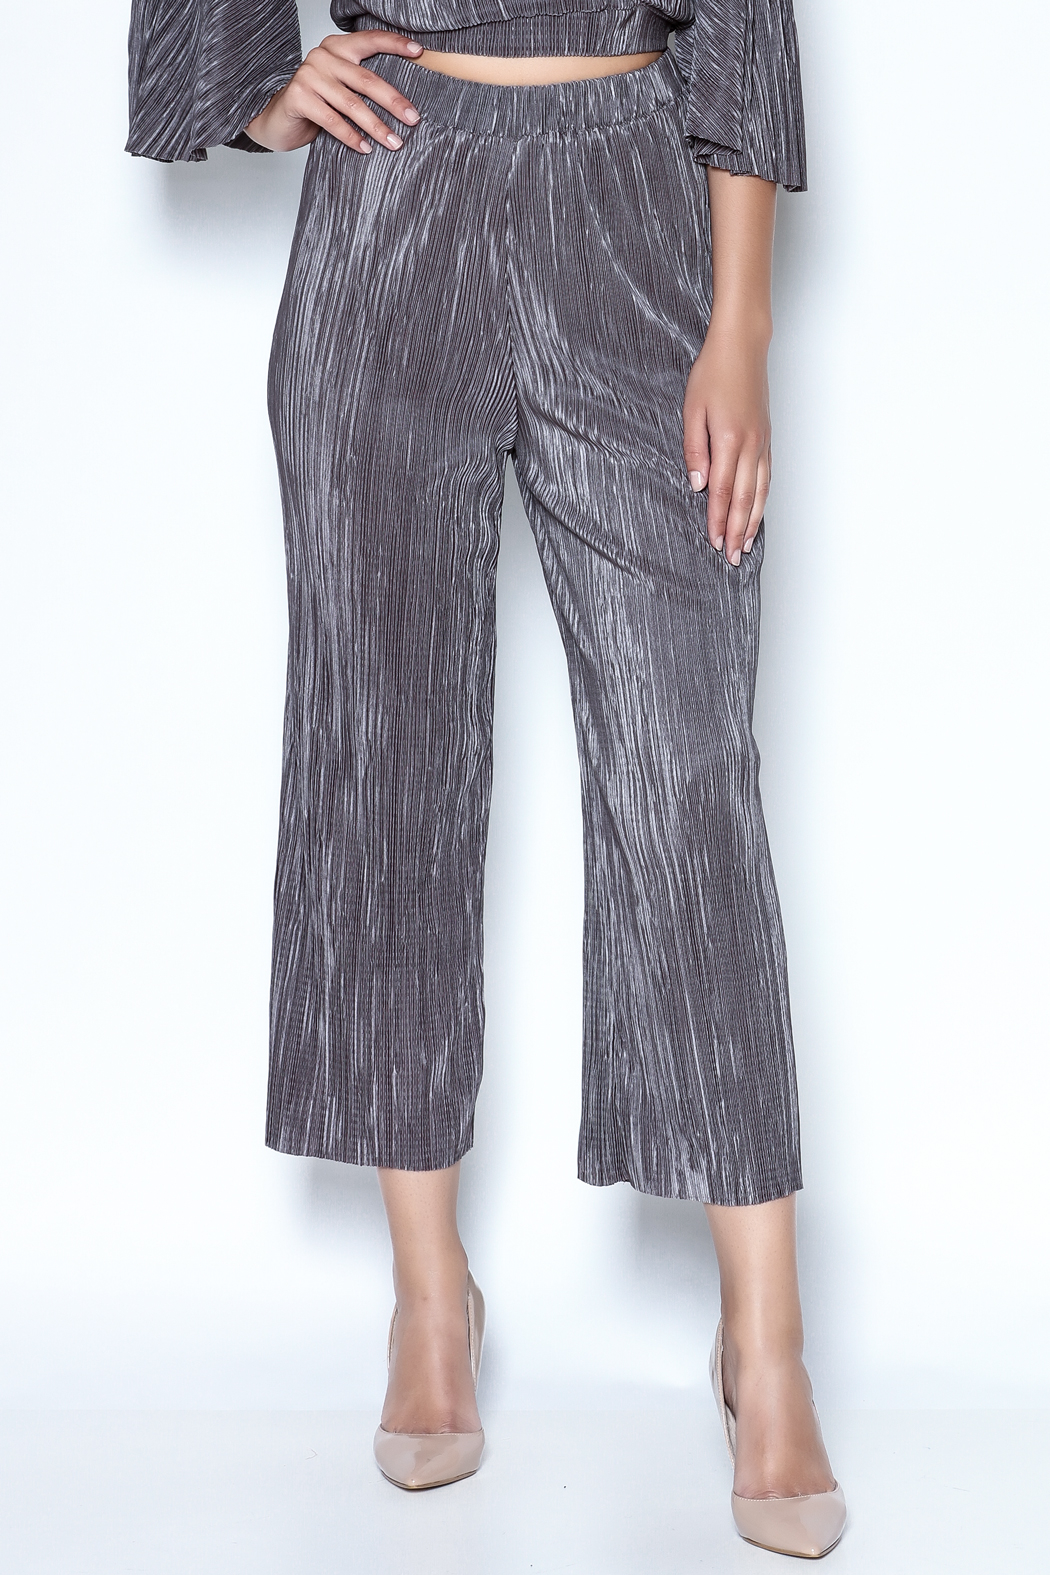 OH MY LOVE Tulbaghia Pleat Culottes - Main Image